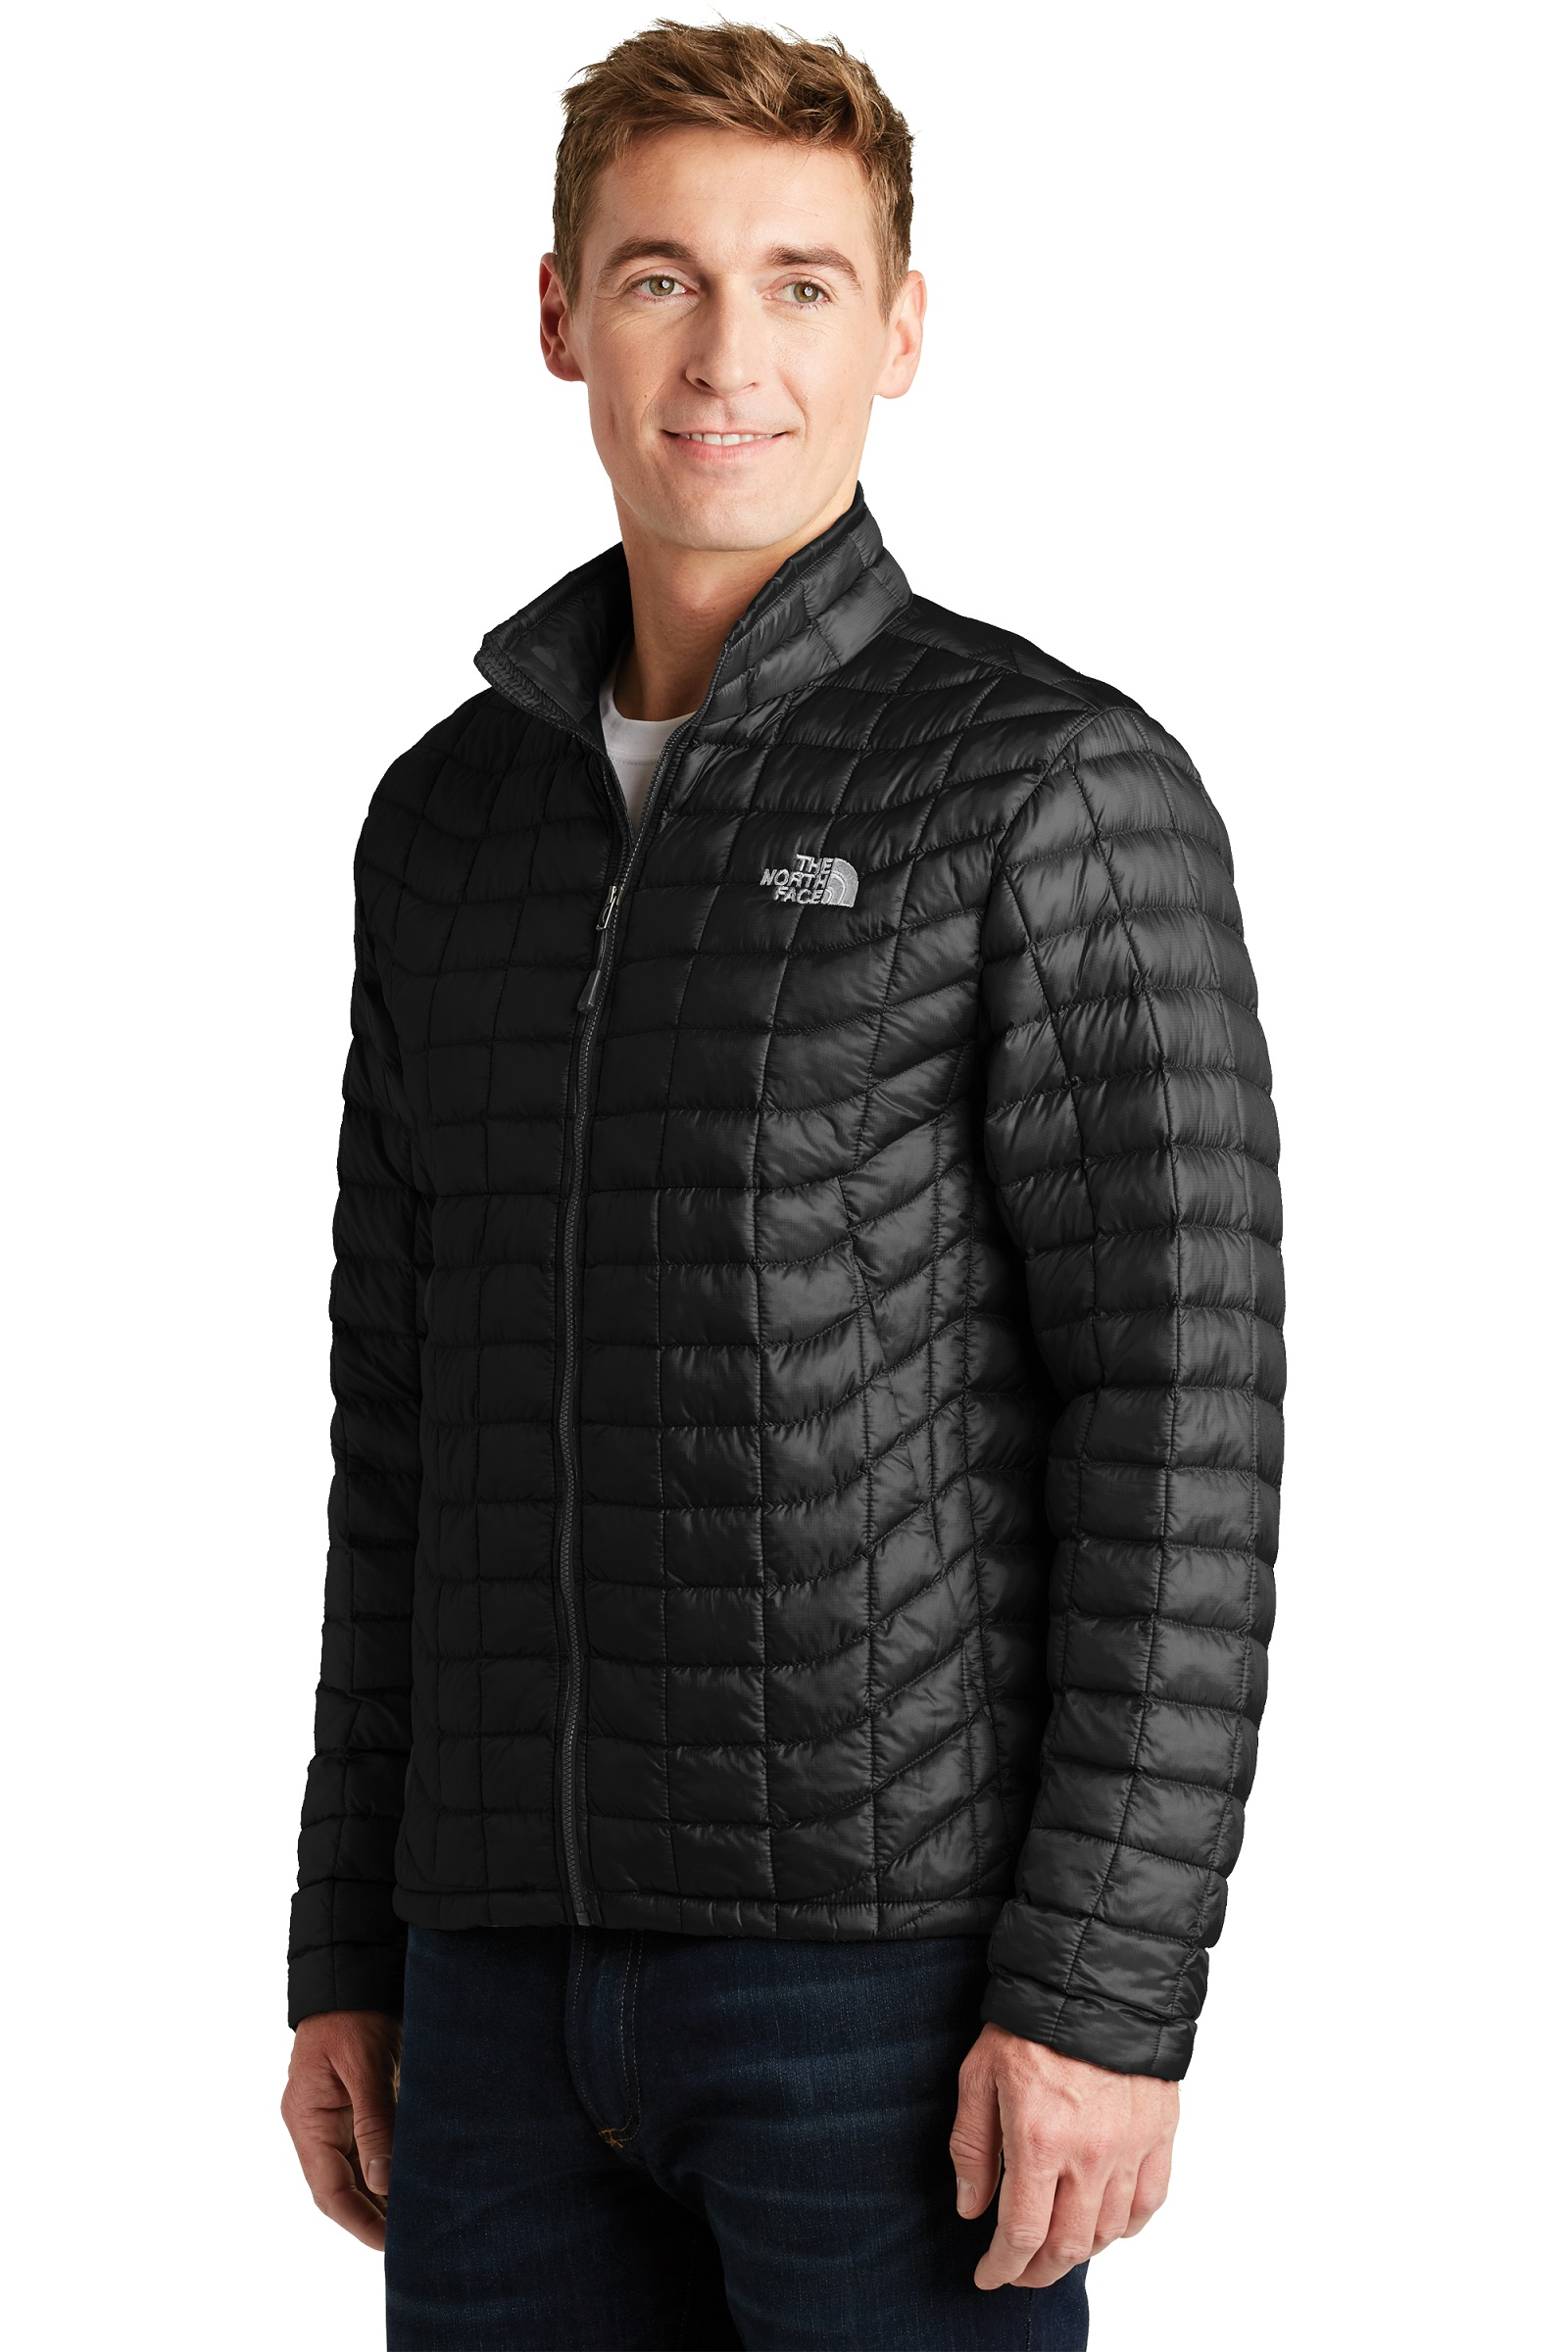 d32129184327 Product Thumb. Product Thumb. The North Face Embroidered Men s ThermoBall  Trekker Jacket